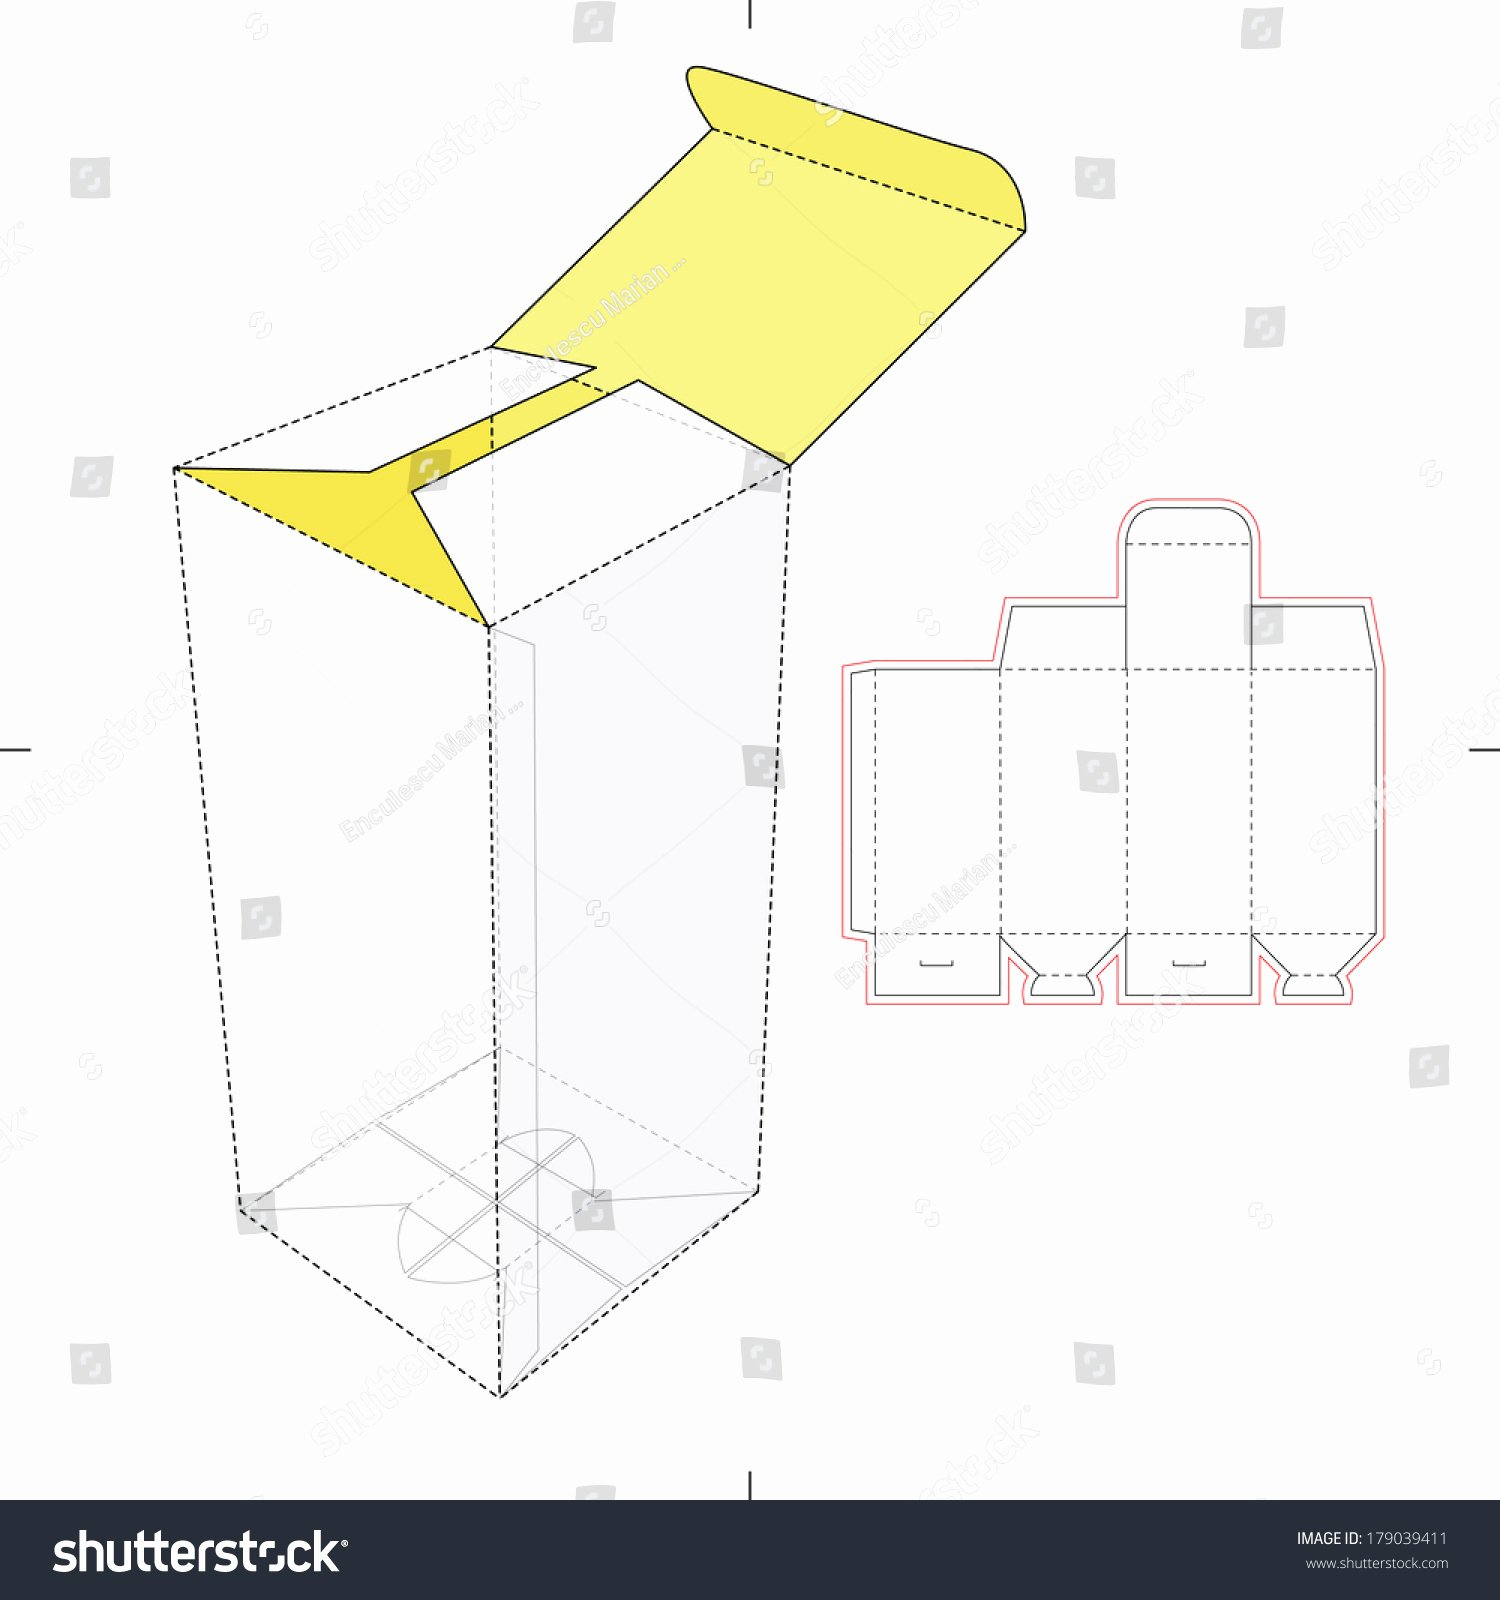 Box Cut Out Patterns Inspirational Vertical Tall Box Diecut Pattern Stock Vector